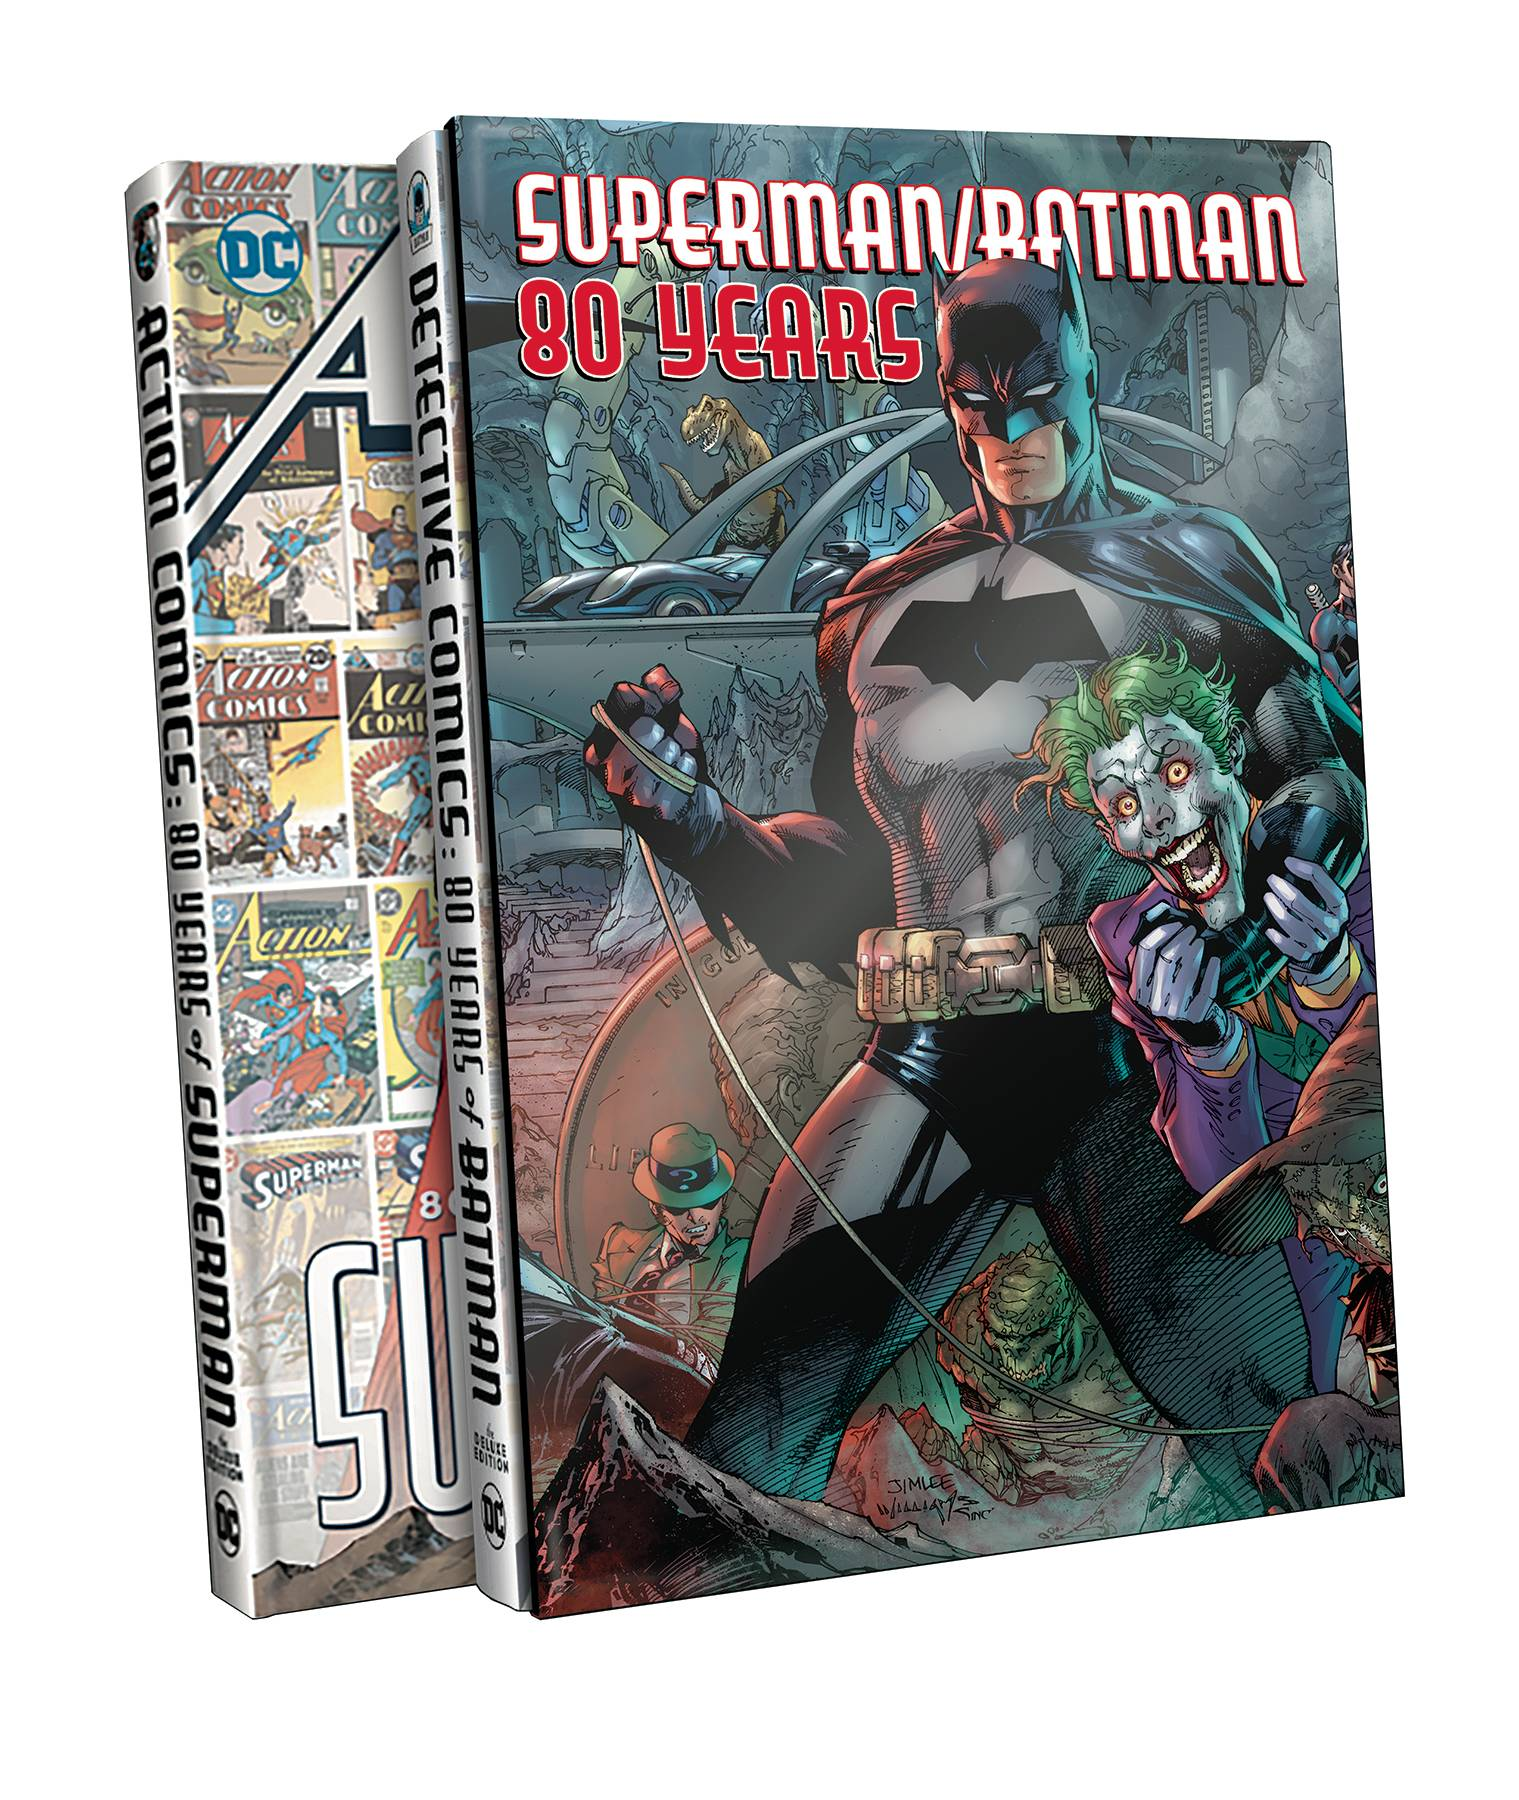 SUPERMAN BATMAN 80 YEARS SLIPCASE SET HC.jpg